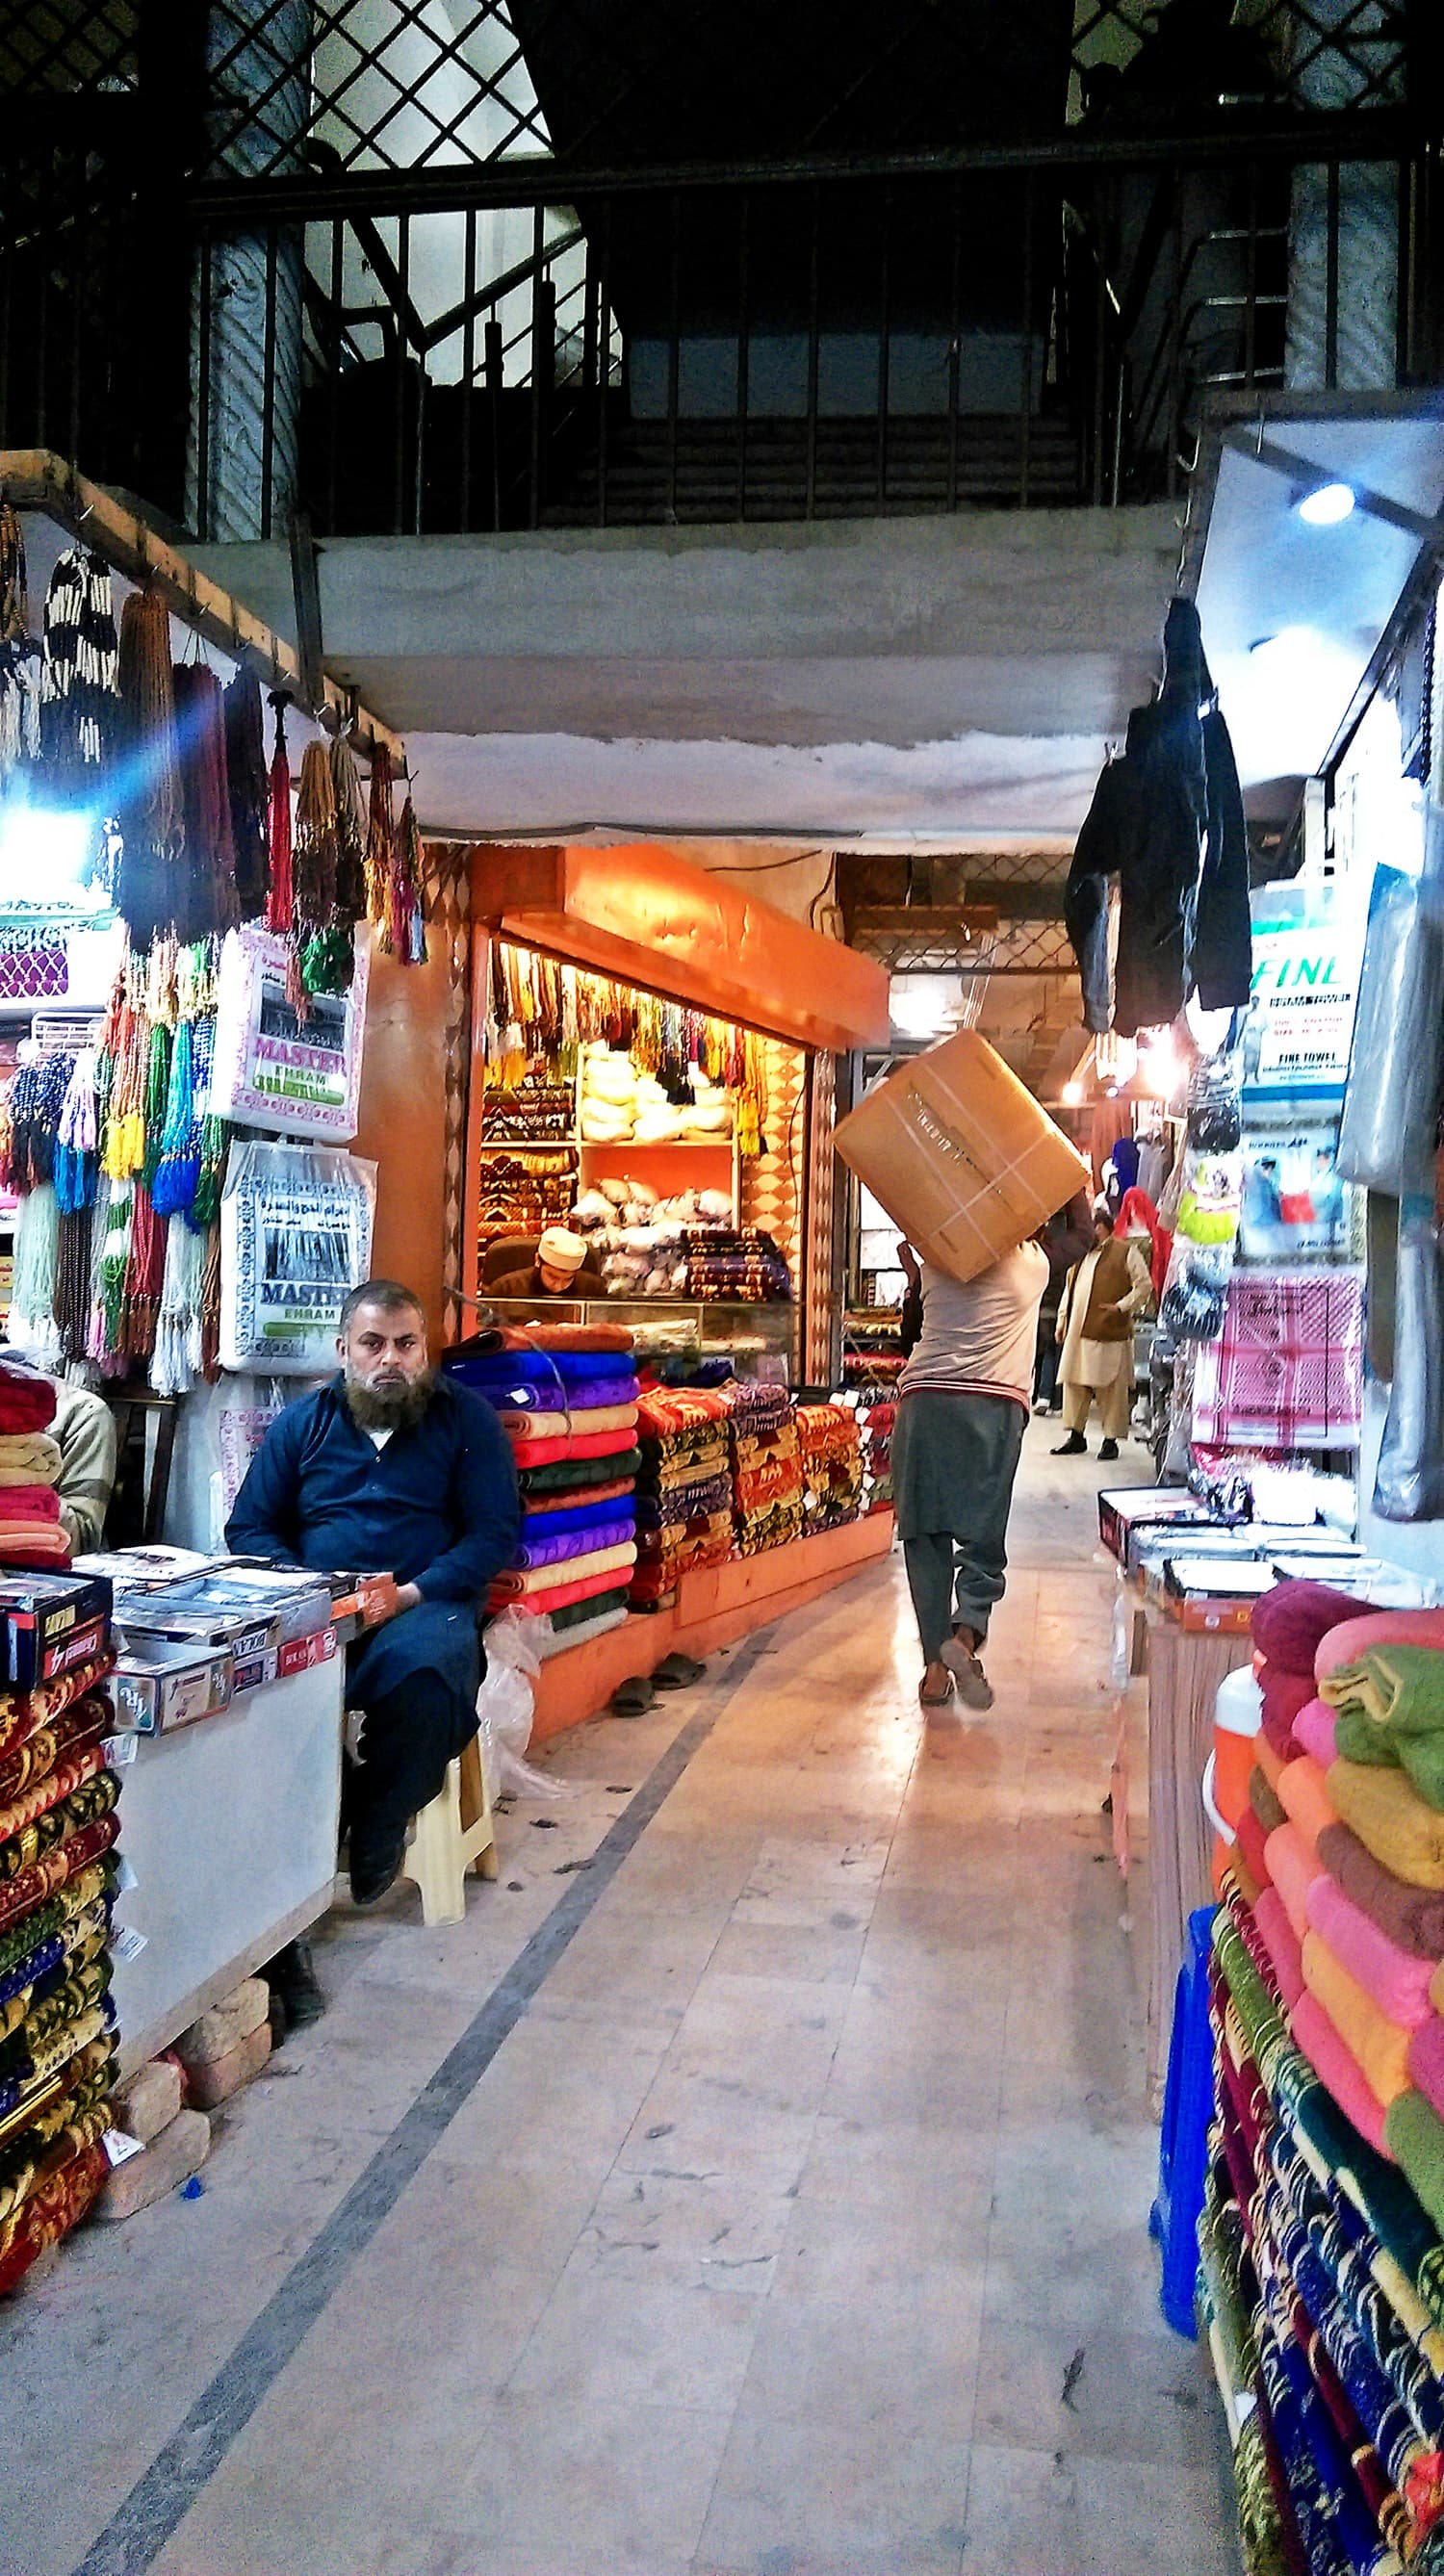 A view of the market on the ground floor of the mosque.